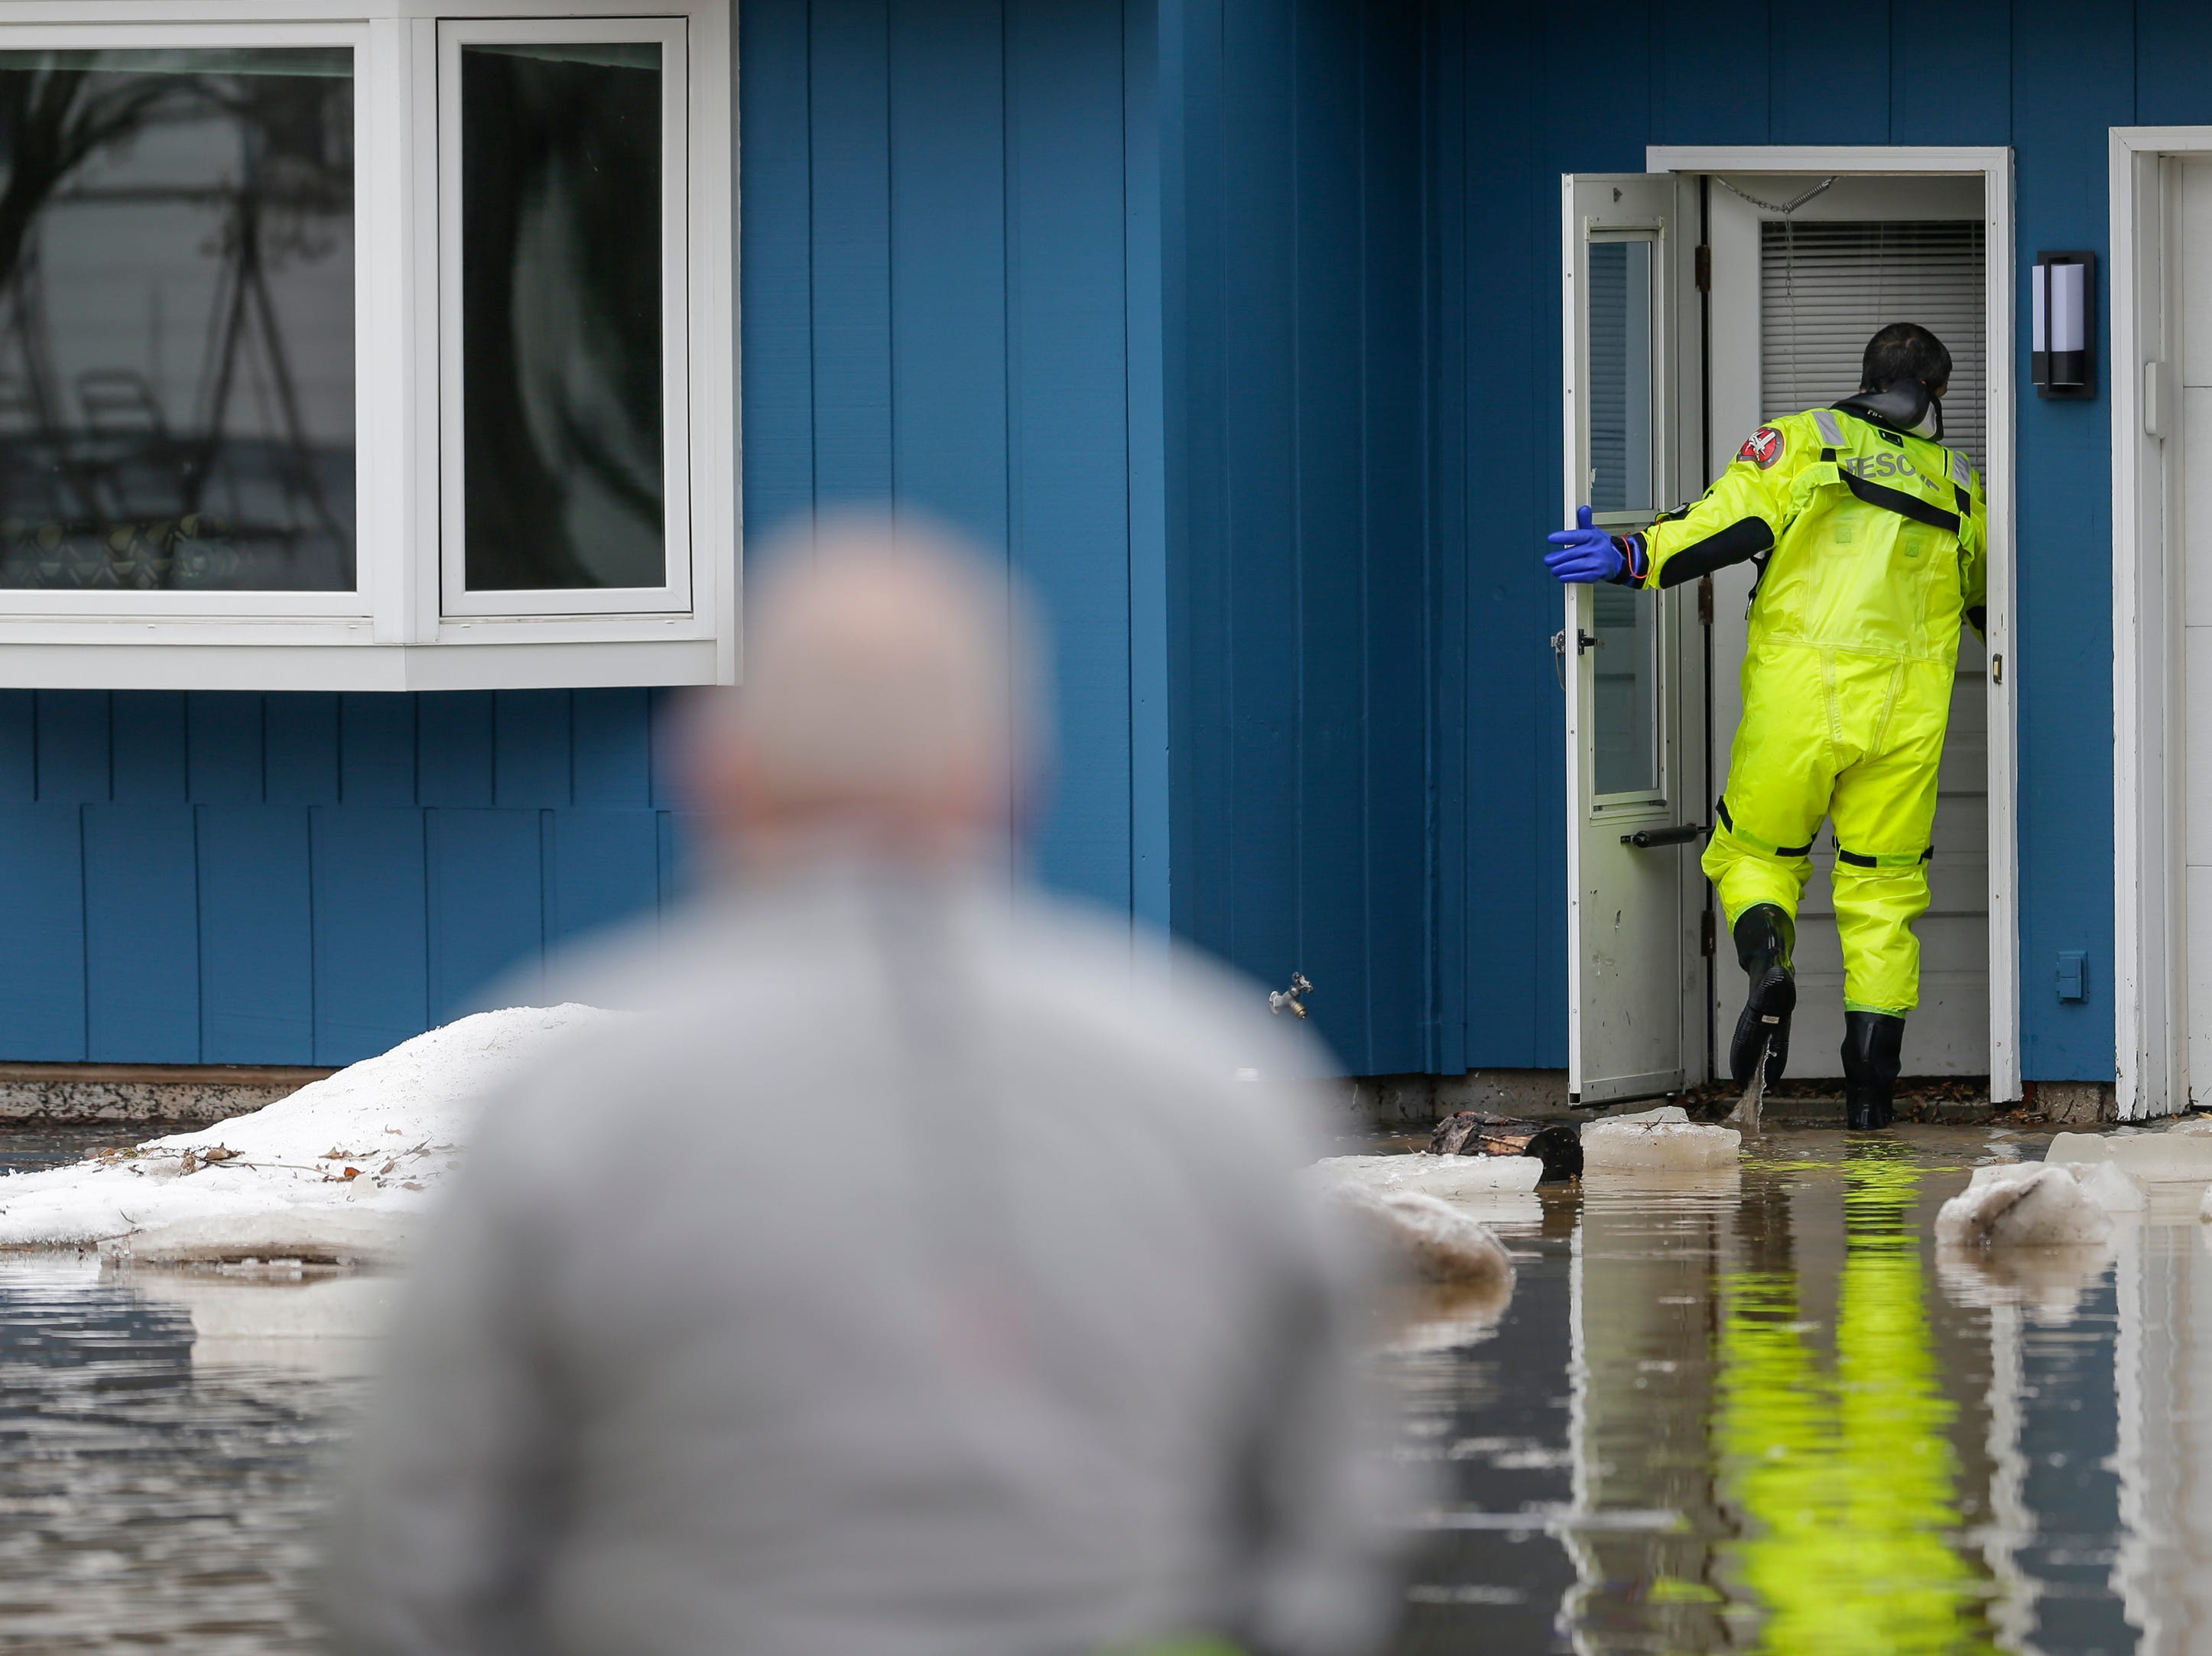 Firefighters evacuate residences near 41st and Archer after an ice jam on the Manitowoc River causes sever flooding Thursday, March 21, 2019, in Manitowoc, Wis. Joshua Clark/USA TODAY NETWORK-Wisconsin